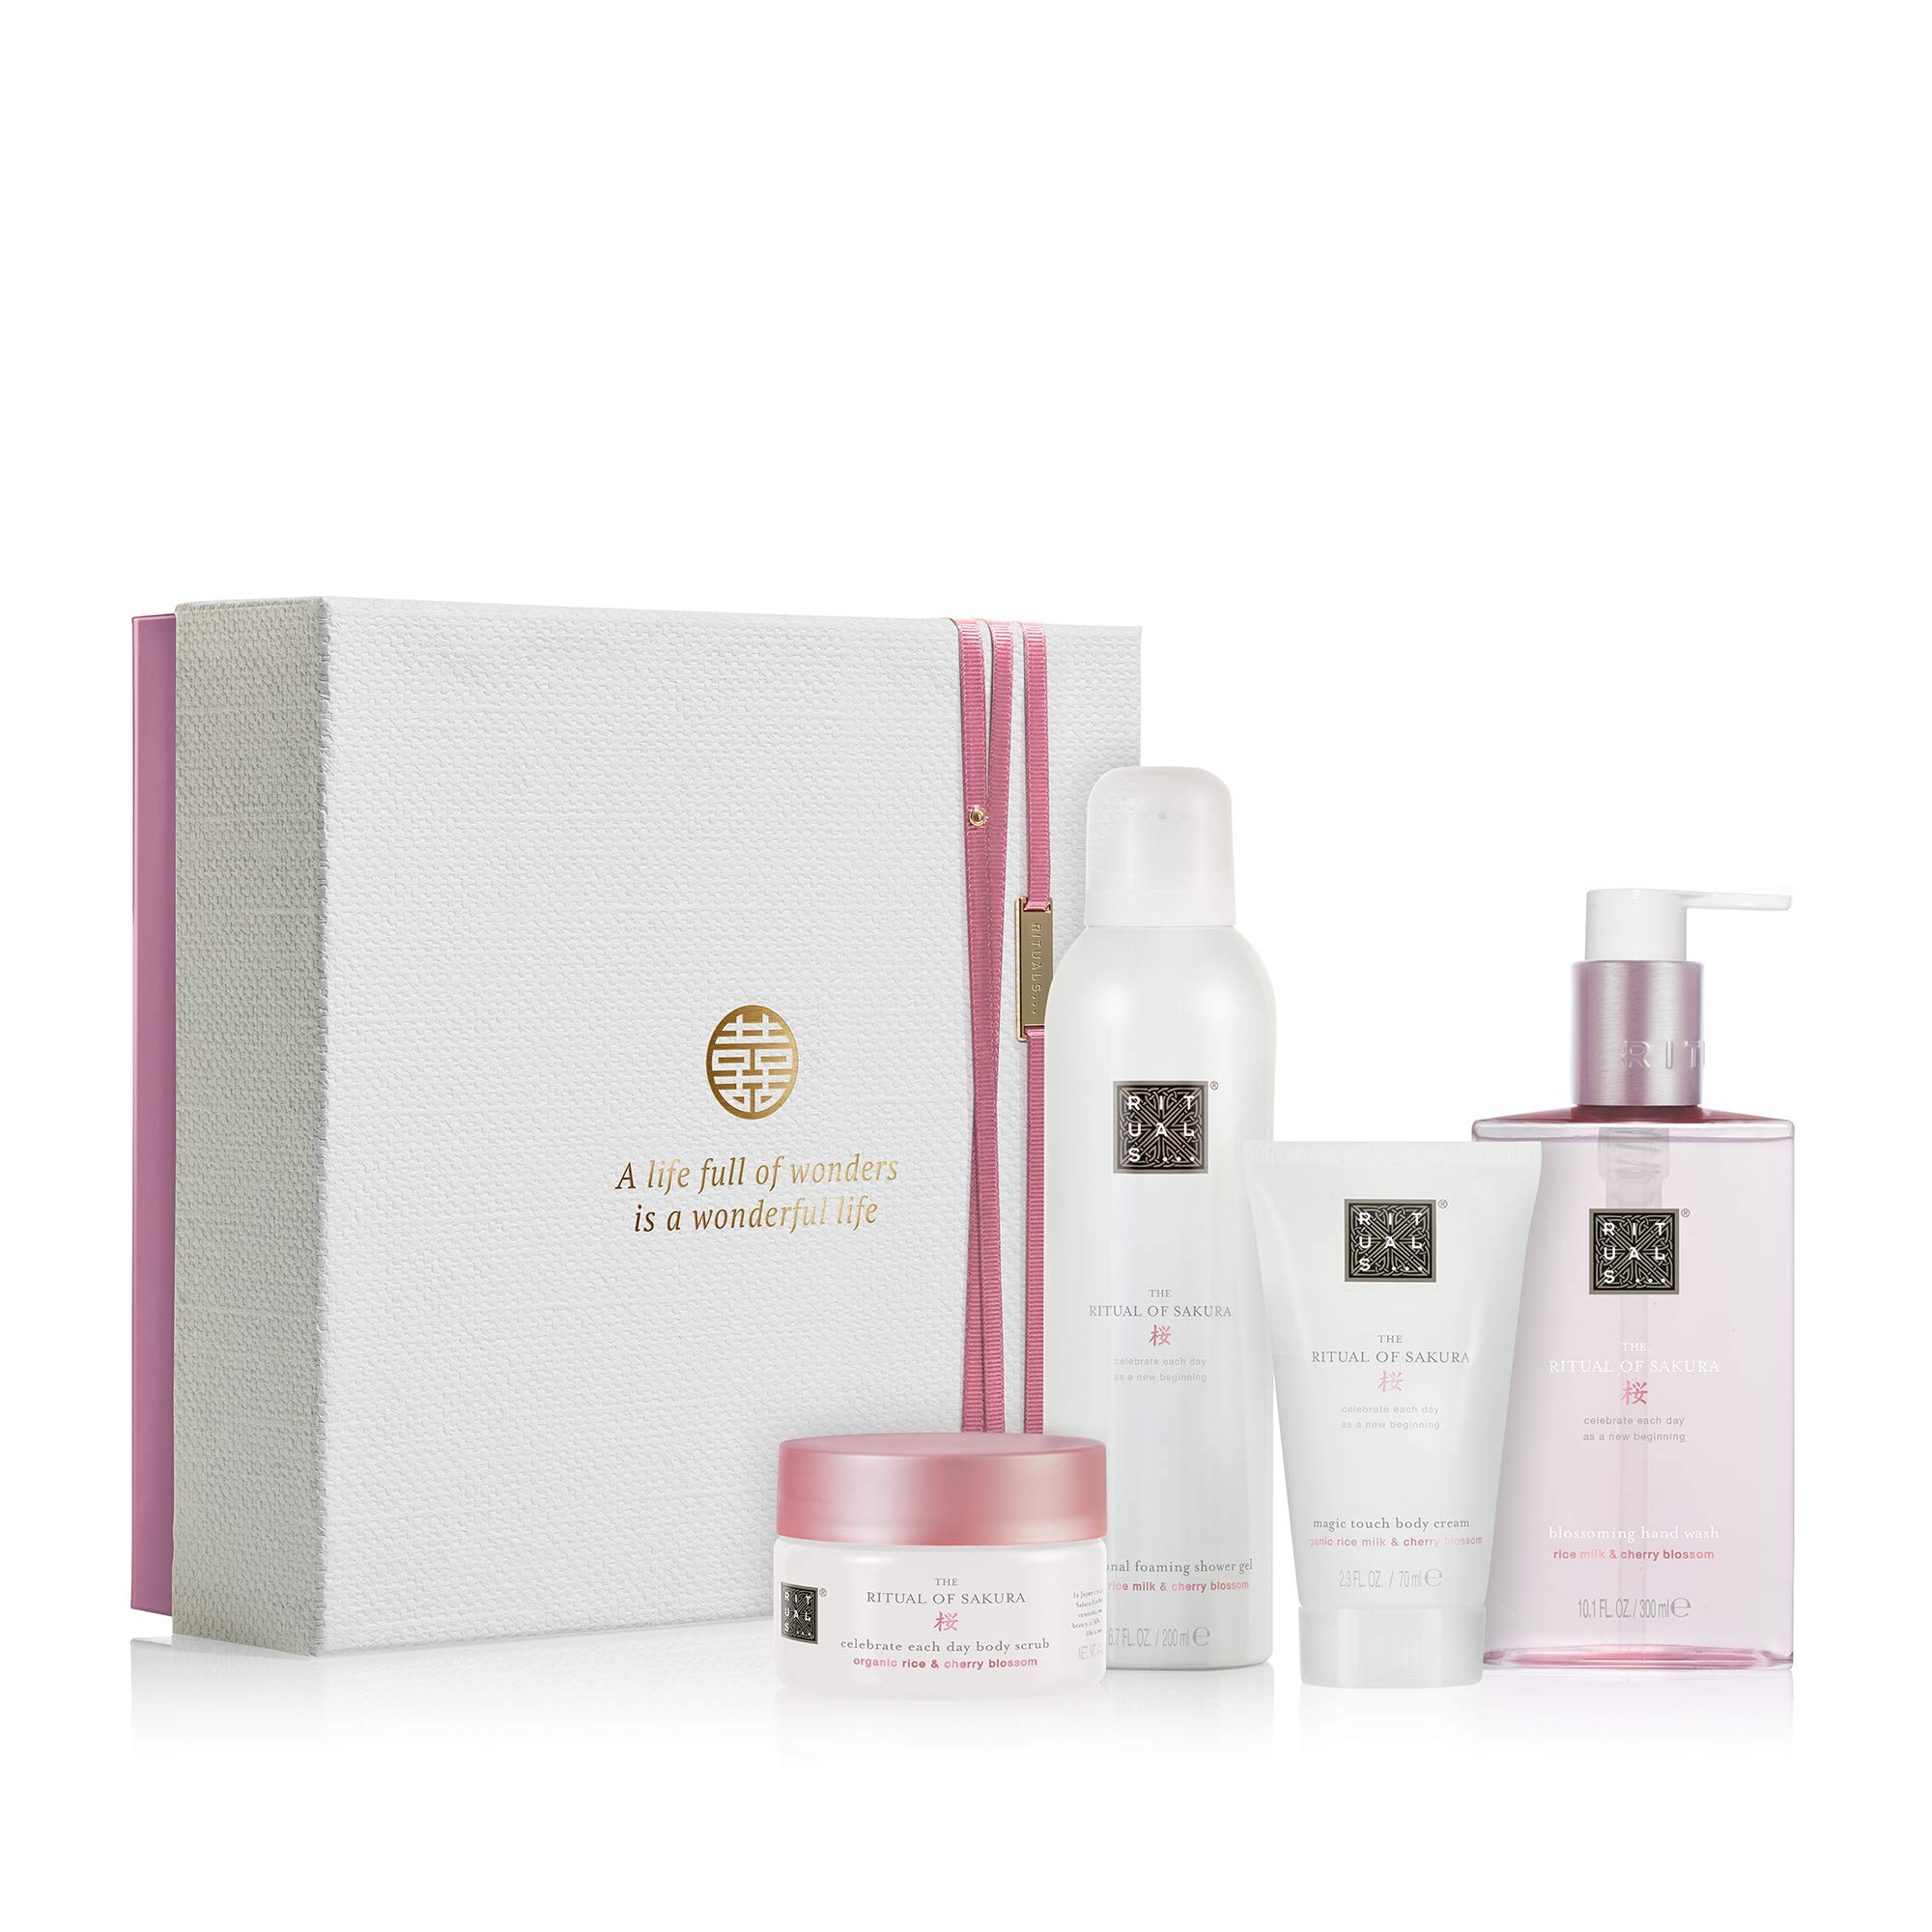 RITUALS The Ritual of Sakura Gift Set Medium, Renewing Ritual